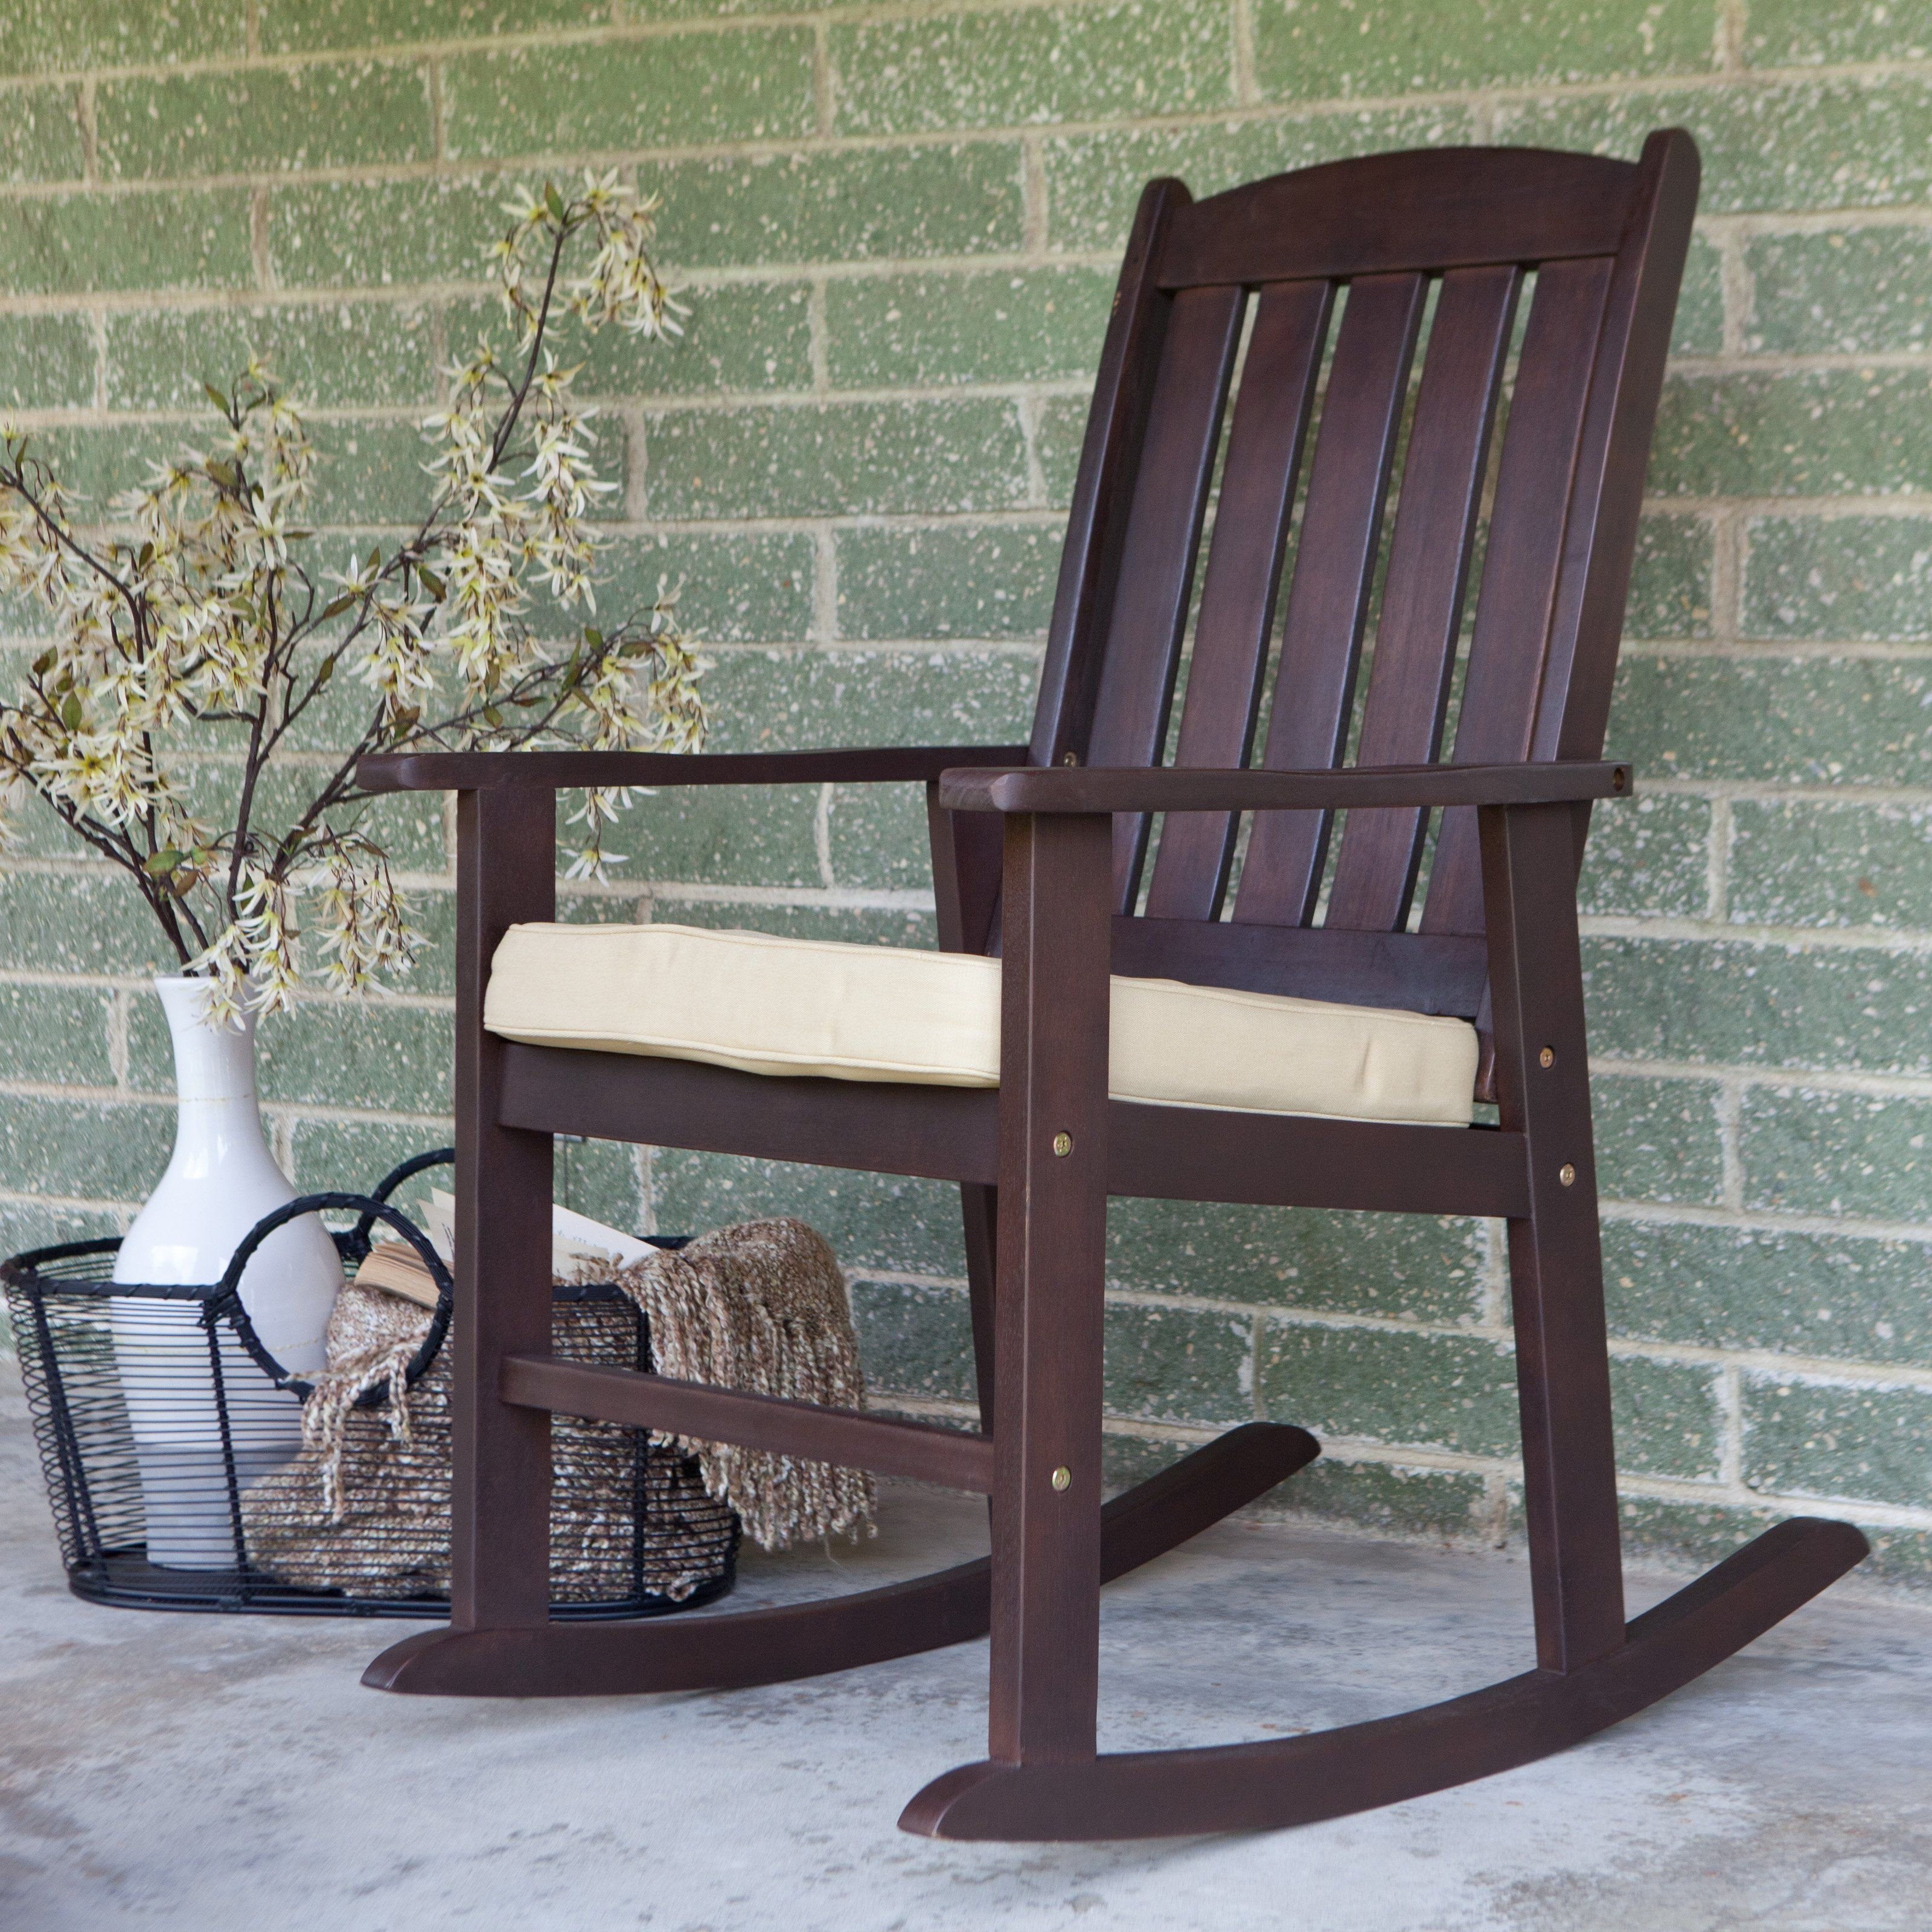 Cabos Collection Rocking Chair with Cushion 129.99